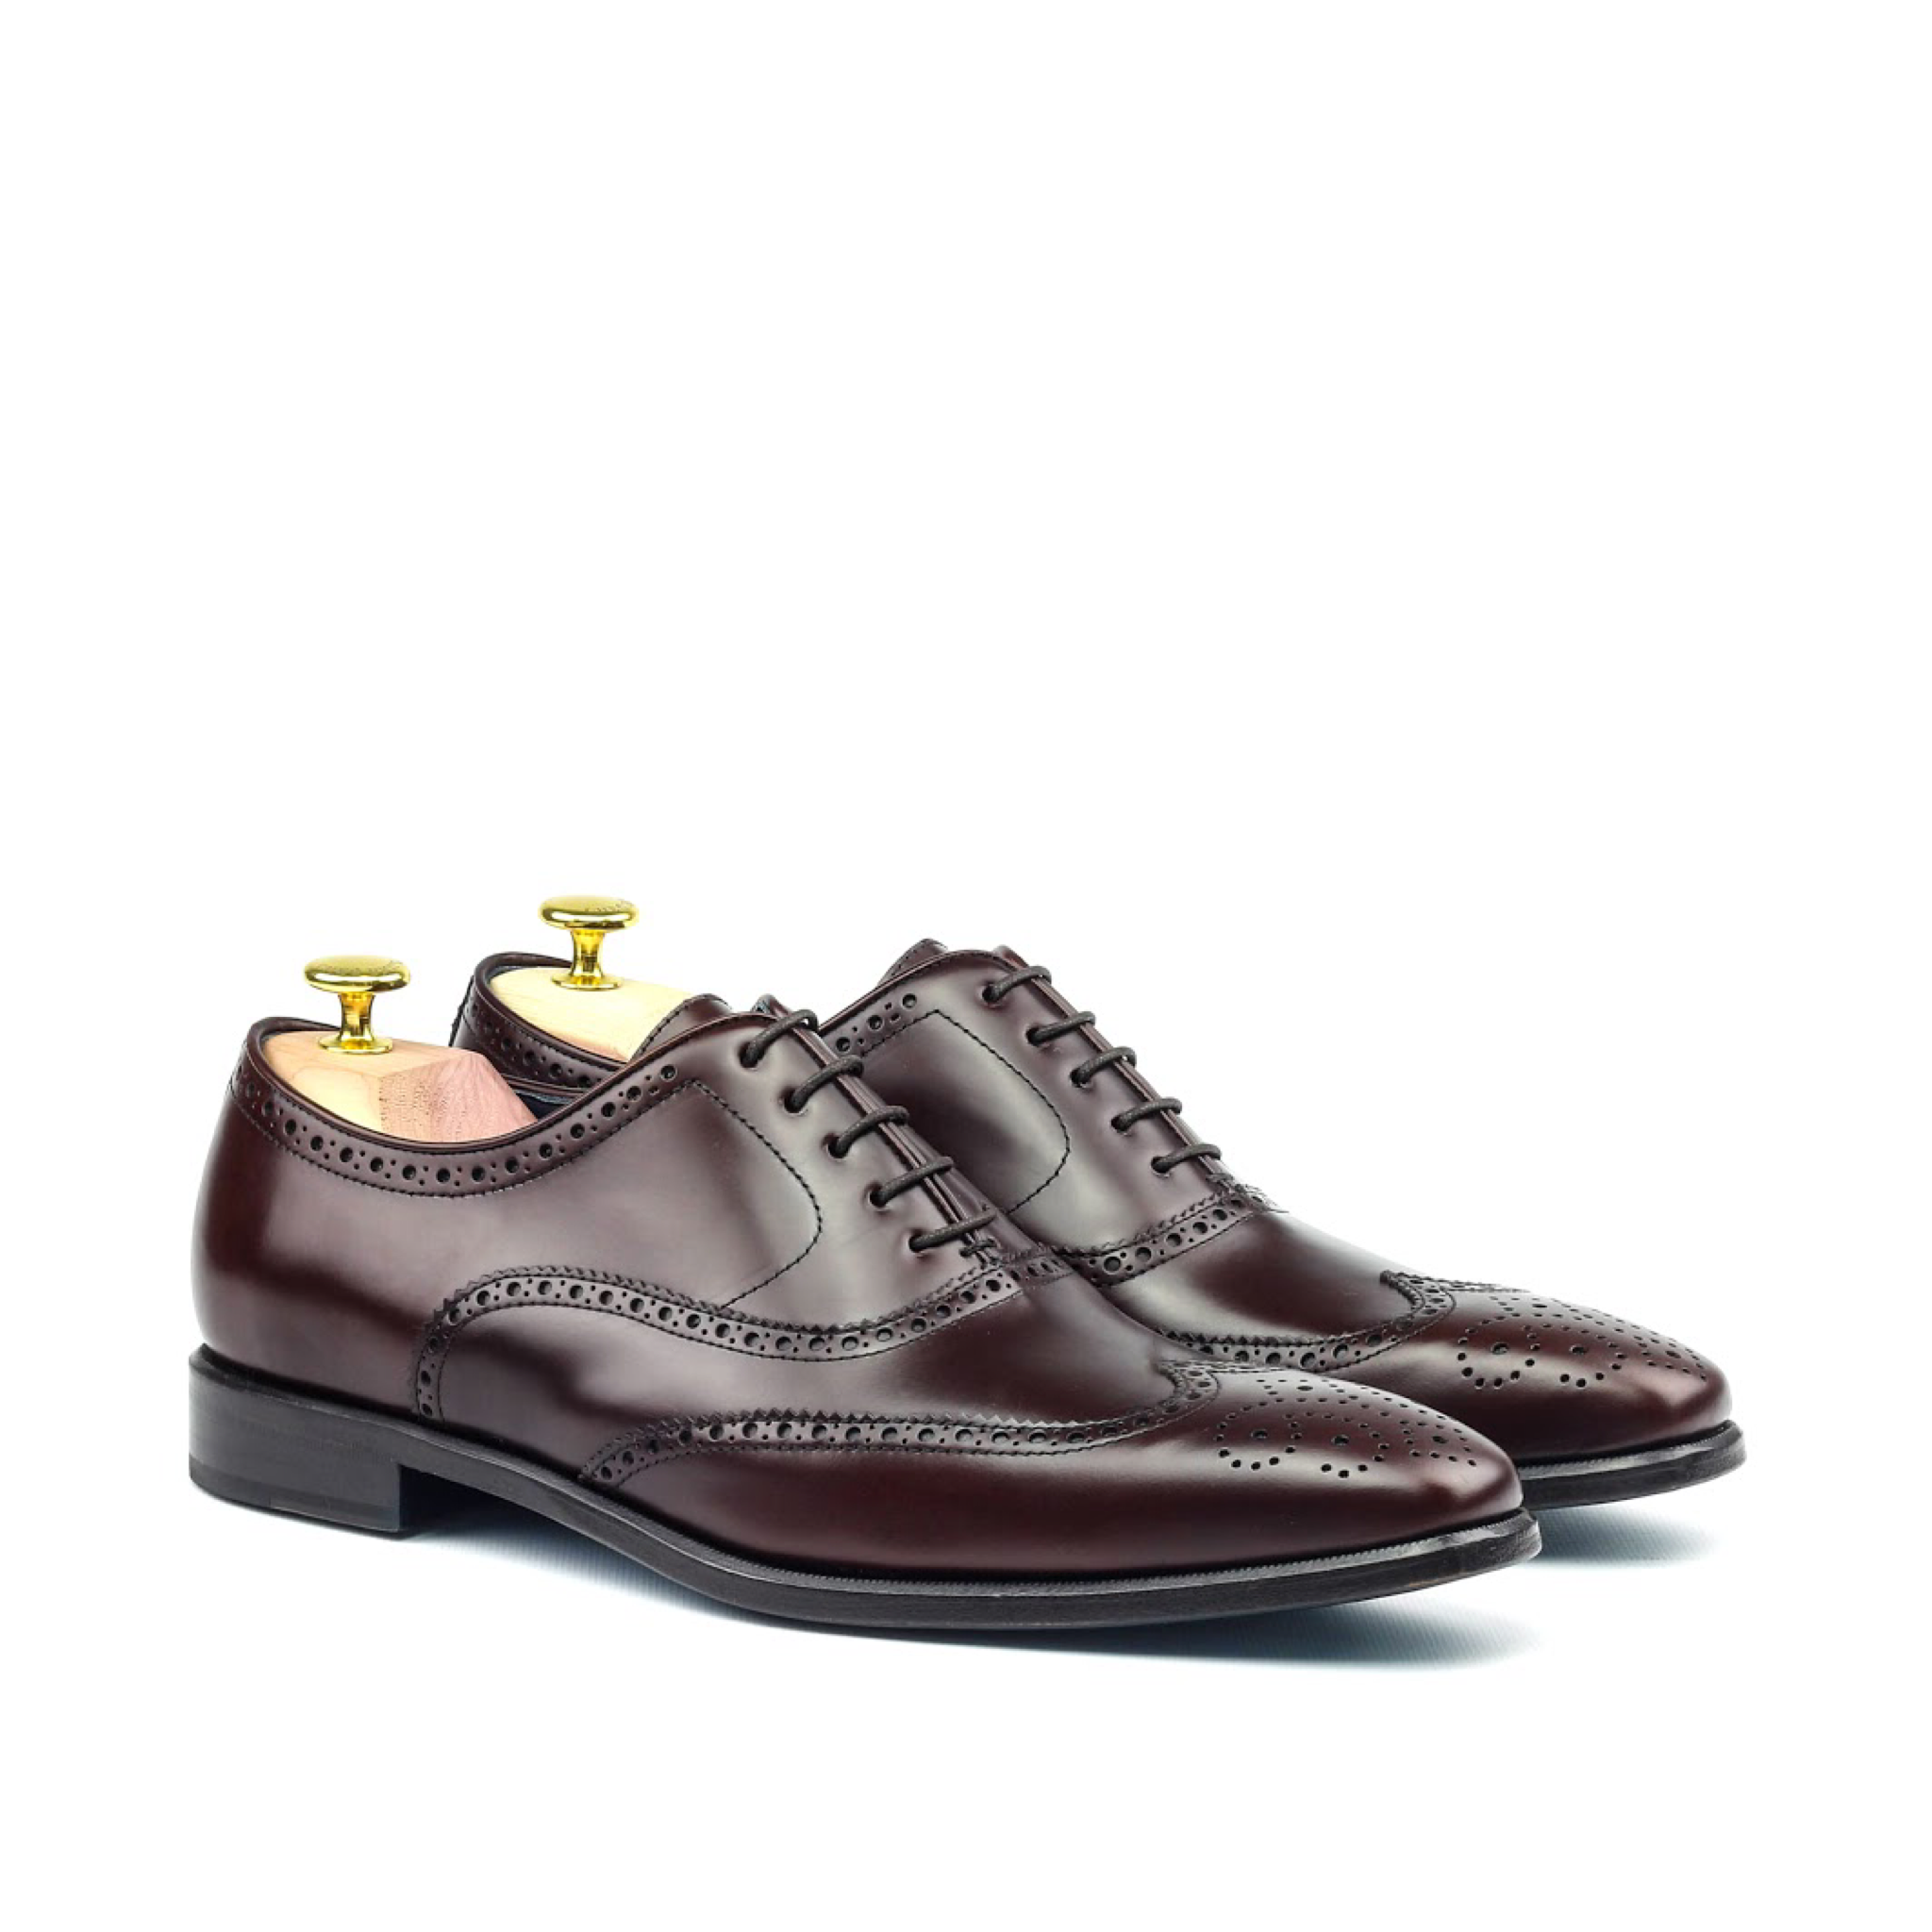 MANOR OF LONDON 'The Marylebone' Burgundy Calfskin Brogue Luxury Custom Initials Monogrammed Front Side View